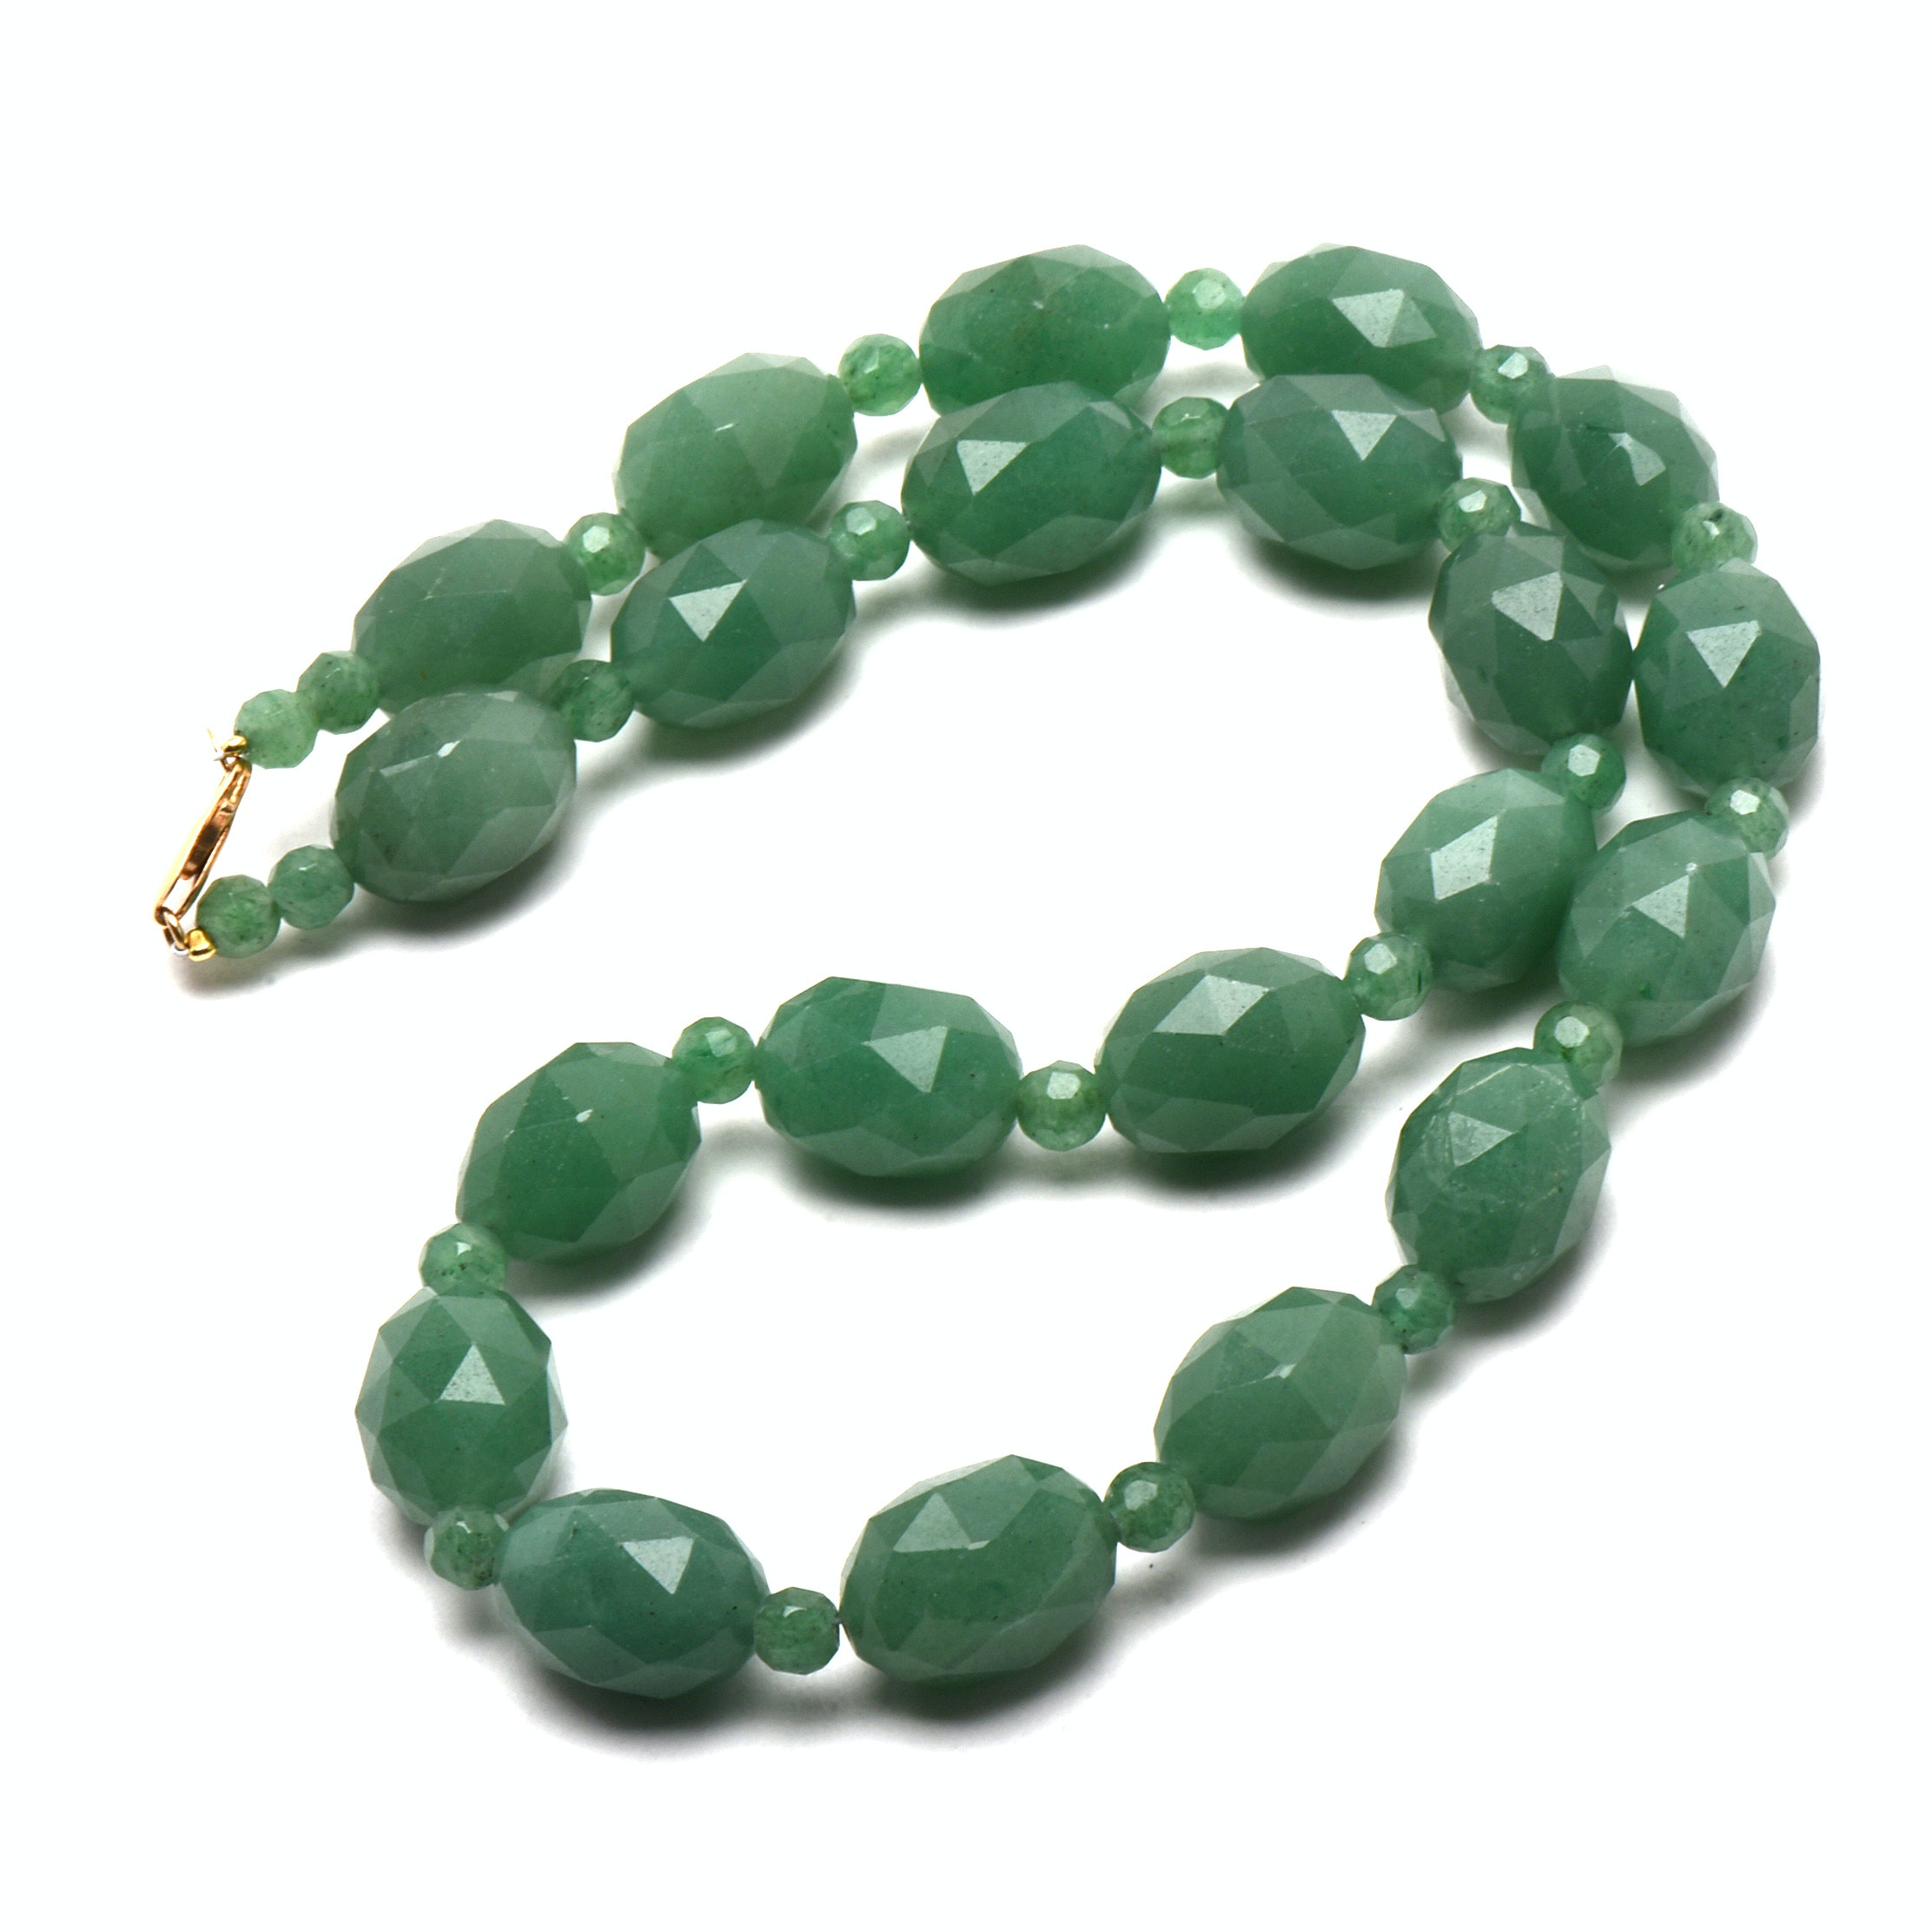 14K Yellow Gold Faceted Aventurine Bead Necklace